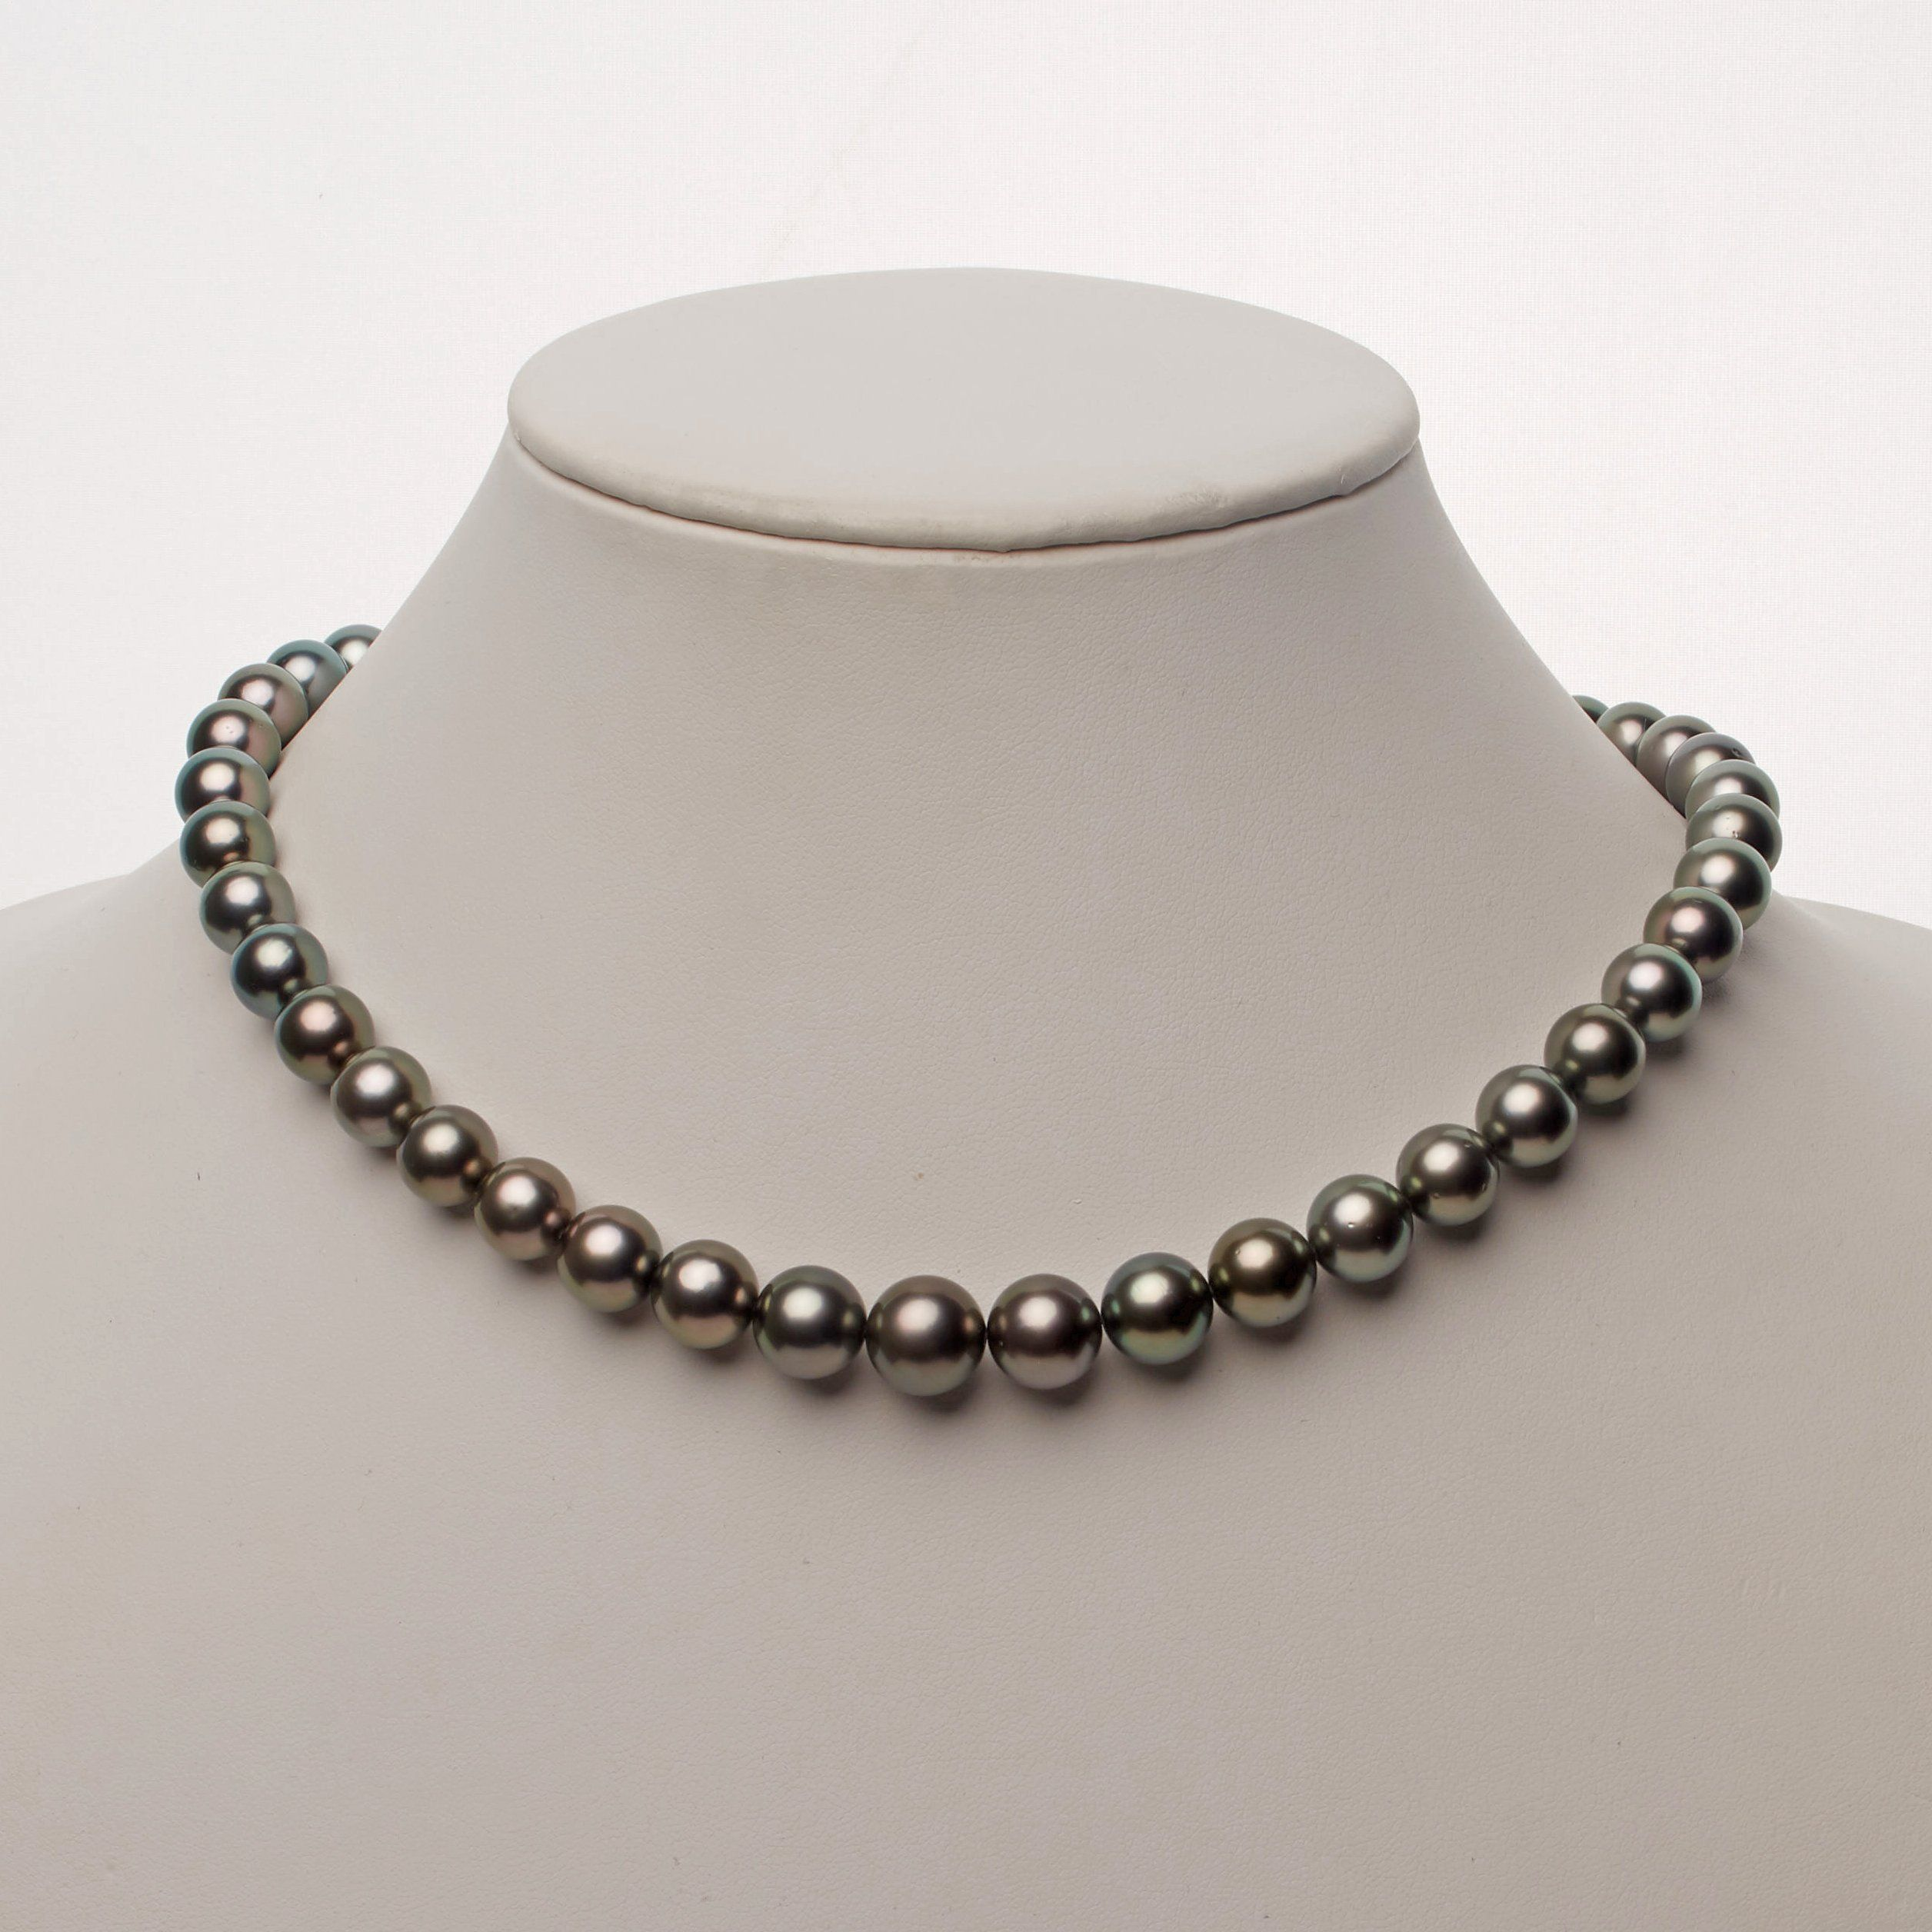 9.0-11.3 mm AA+/AAA Tahitian Round Pearl Necklace